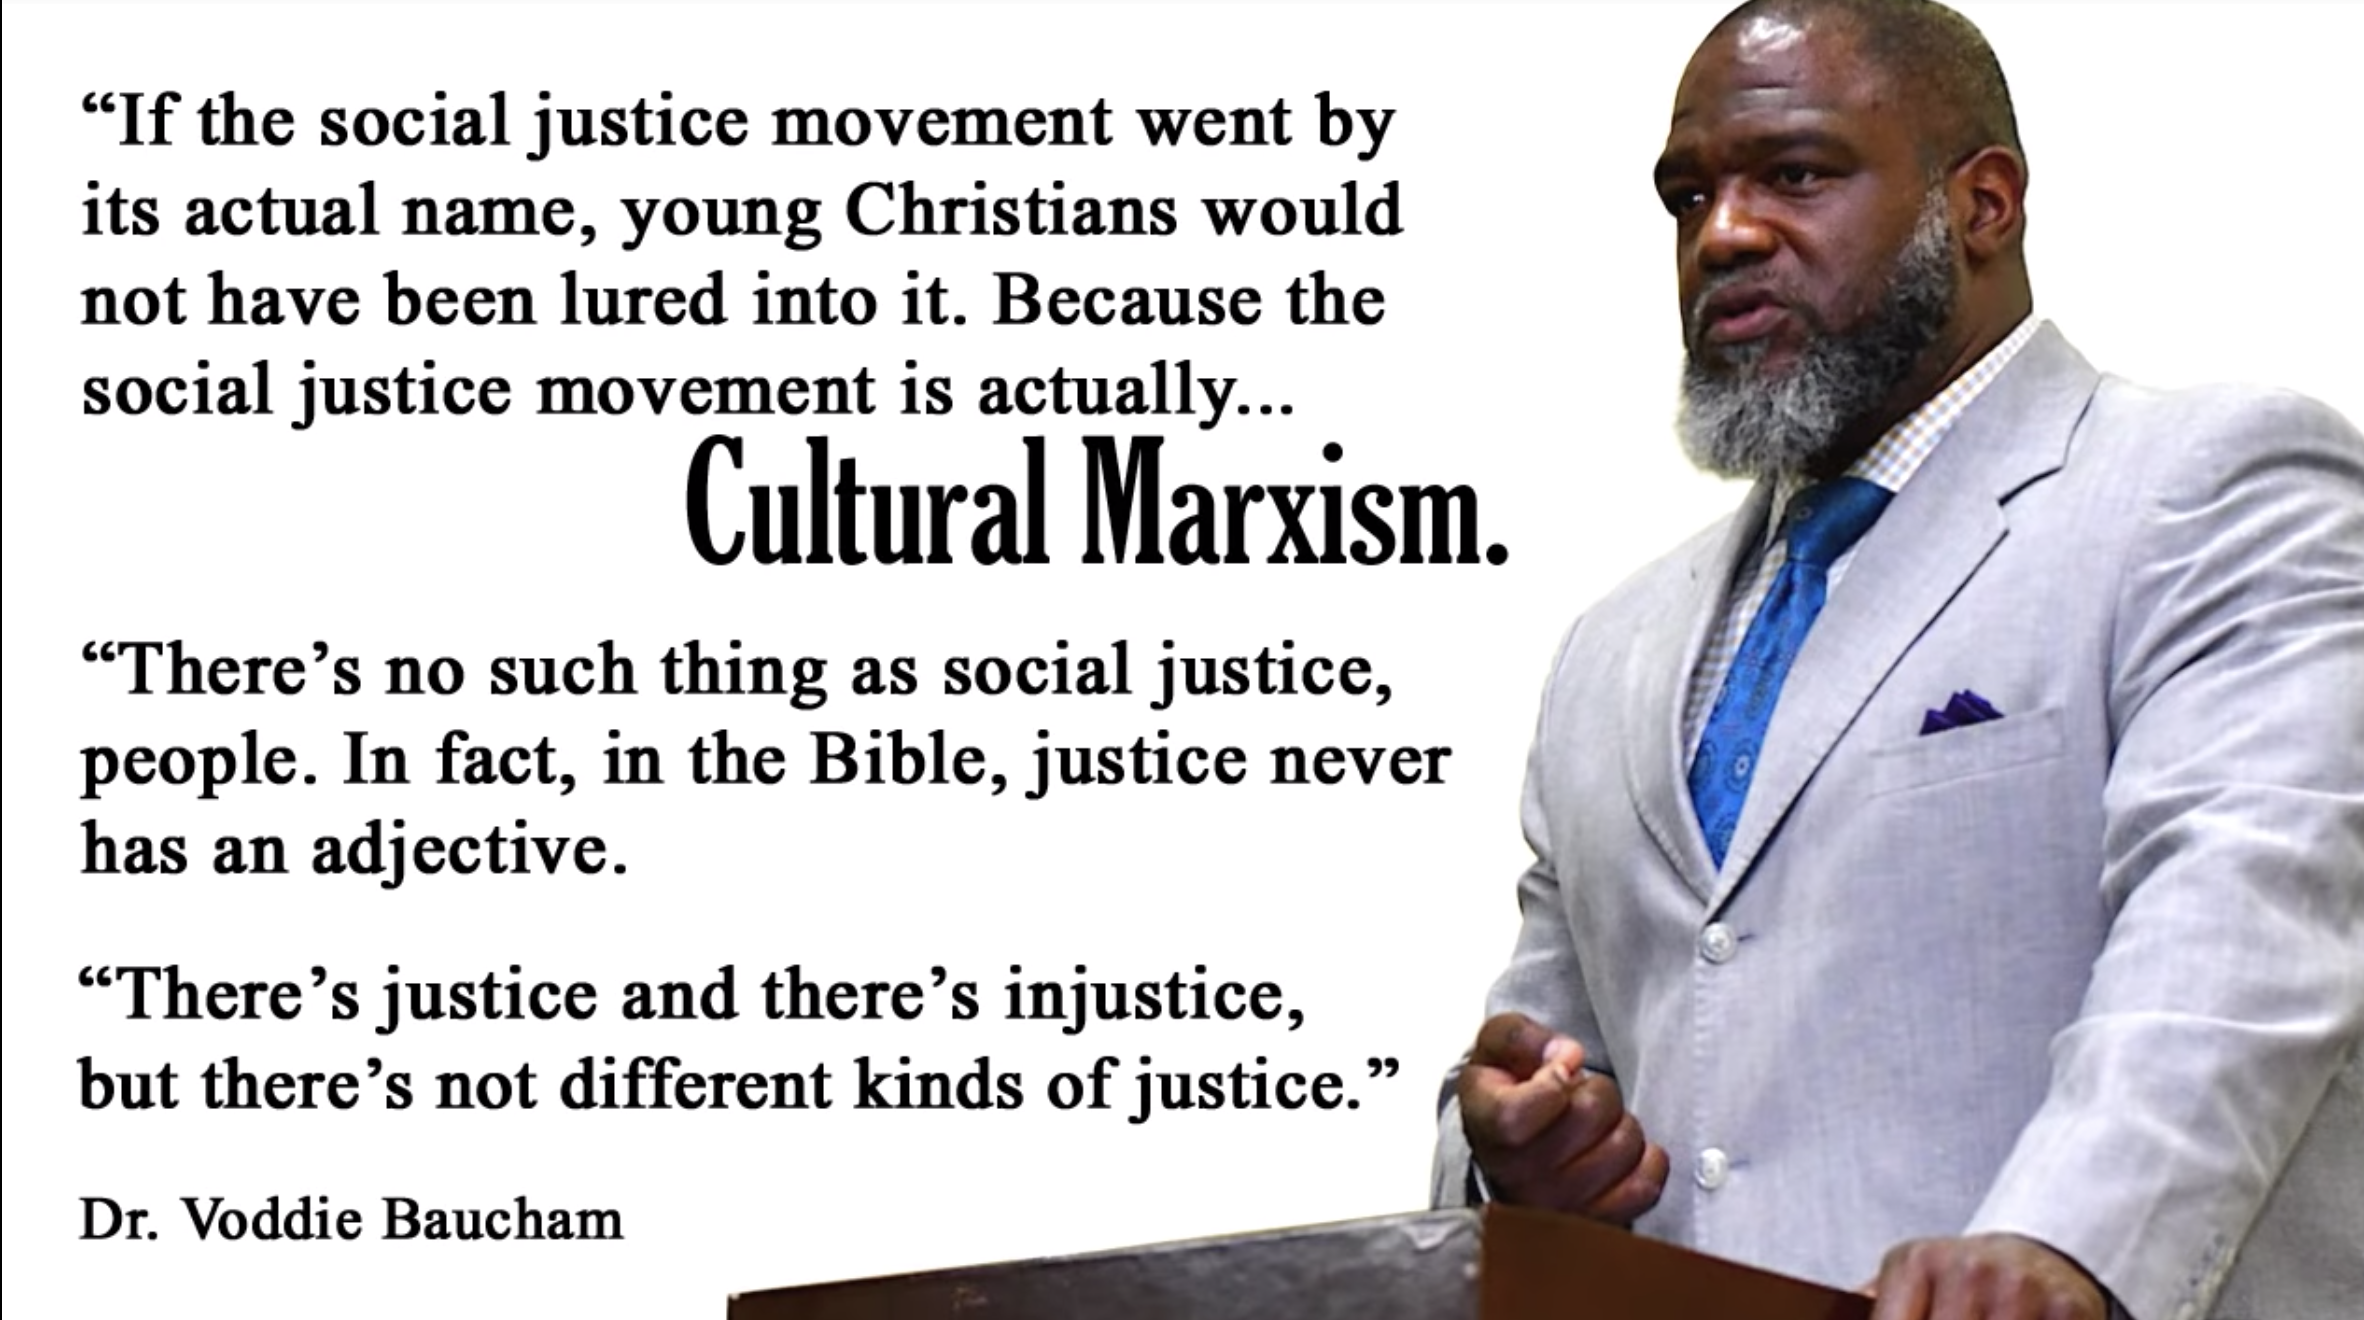 Voddie Baucham: What Does the Bible Say About Social Justice?   Bible  Thumping Wingnut Network